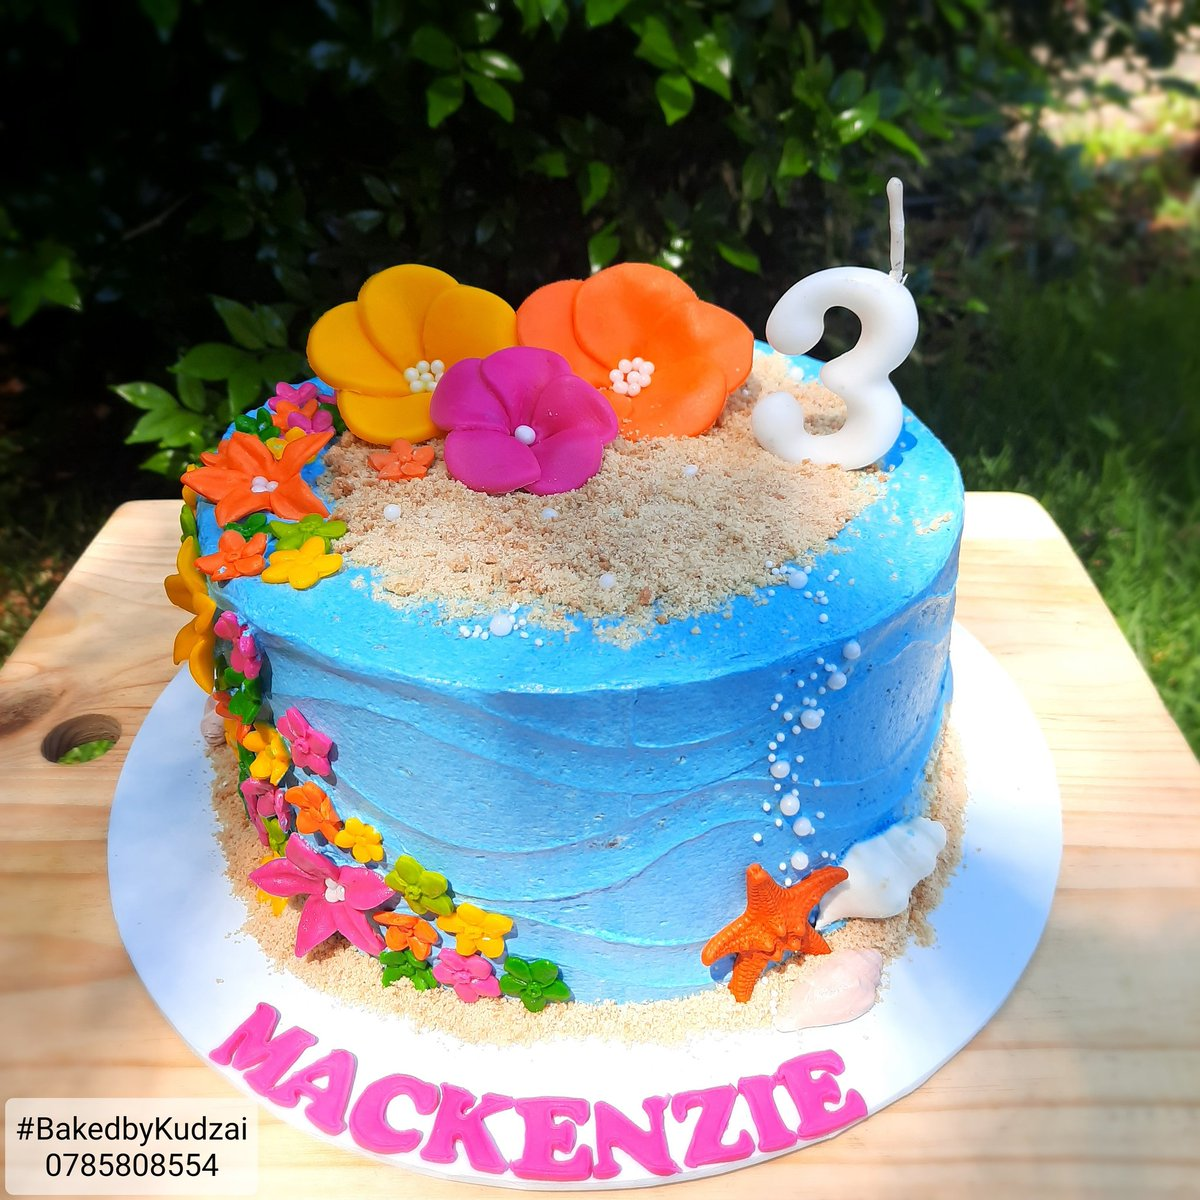 Baked By Kudzai On Twitter The Request Was Simple Blue Cake With Bold Bright Flowers For A Hawaiian Themed Birthday Party Delivered By Acheteso Bakedbykudzai Deliveredbyachetesonline Https T Co 2w63nio0yk